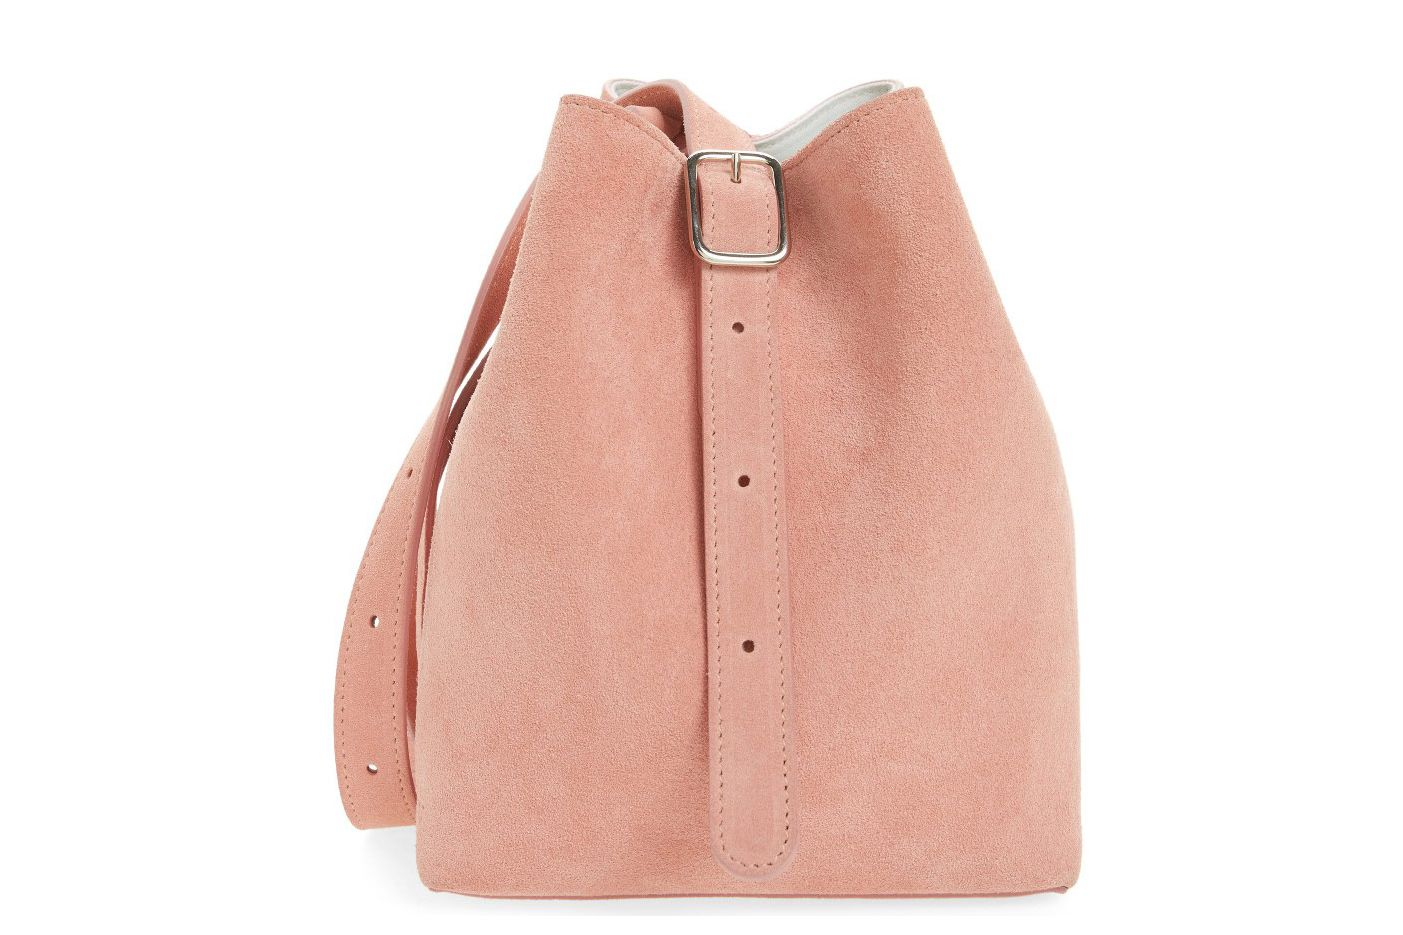 Creatures of Comfort Apple Pebbled Leather Bag